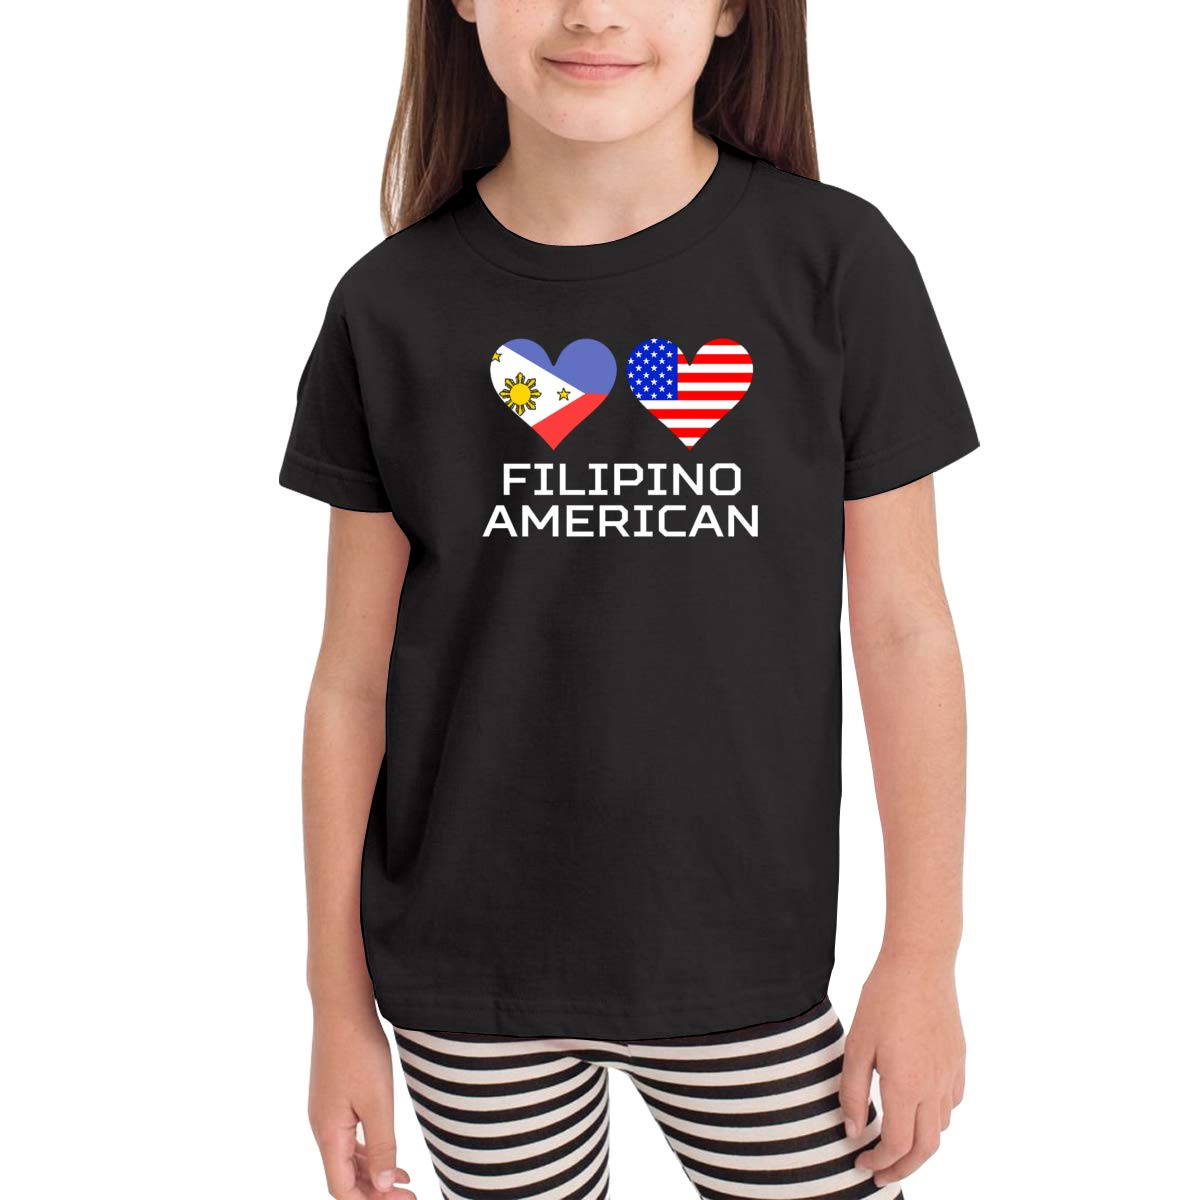 Onlybabycare Filipino American Hearts Black Cotton T Shirt Lightweight Breathable Solid Tee for Toddler Boys Girls Kids